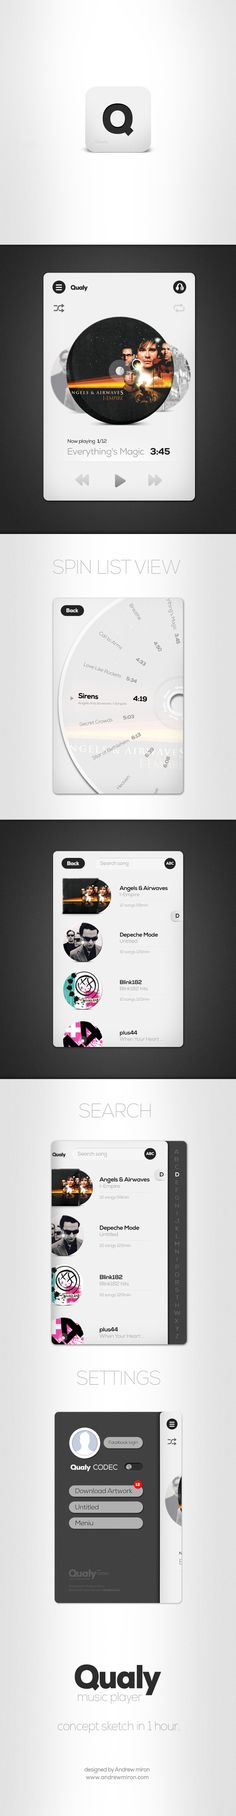 Qualy #app. by Andrew Miron, #Interface #Design